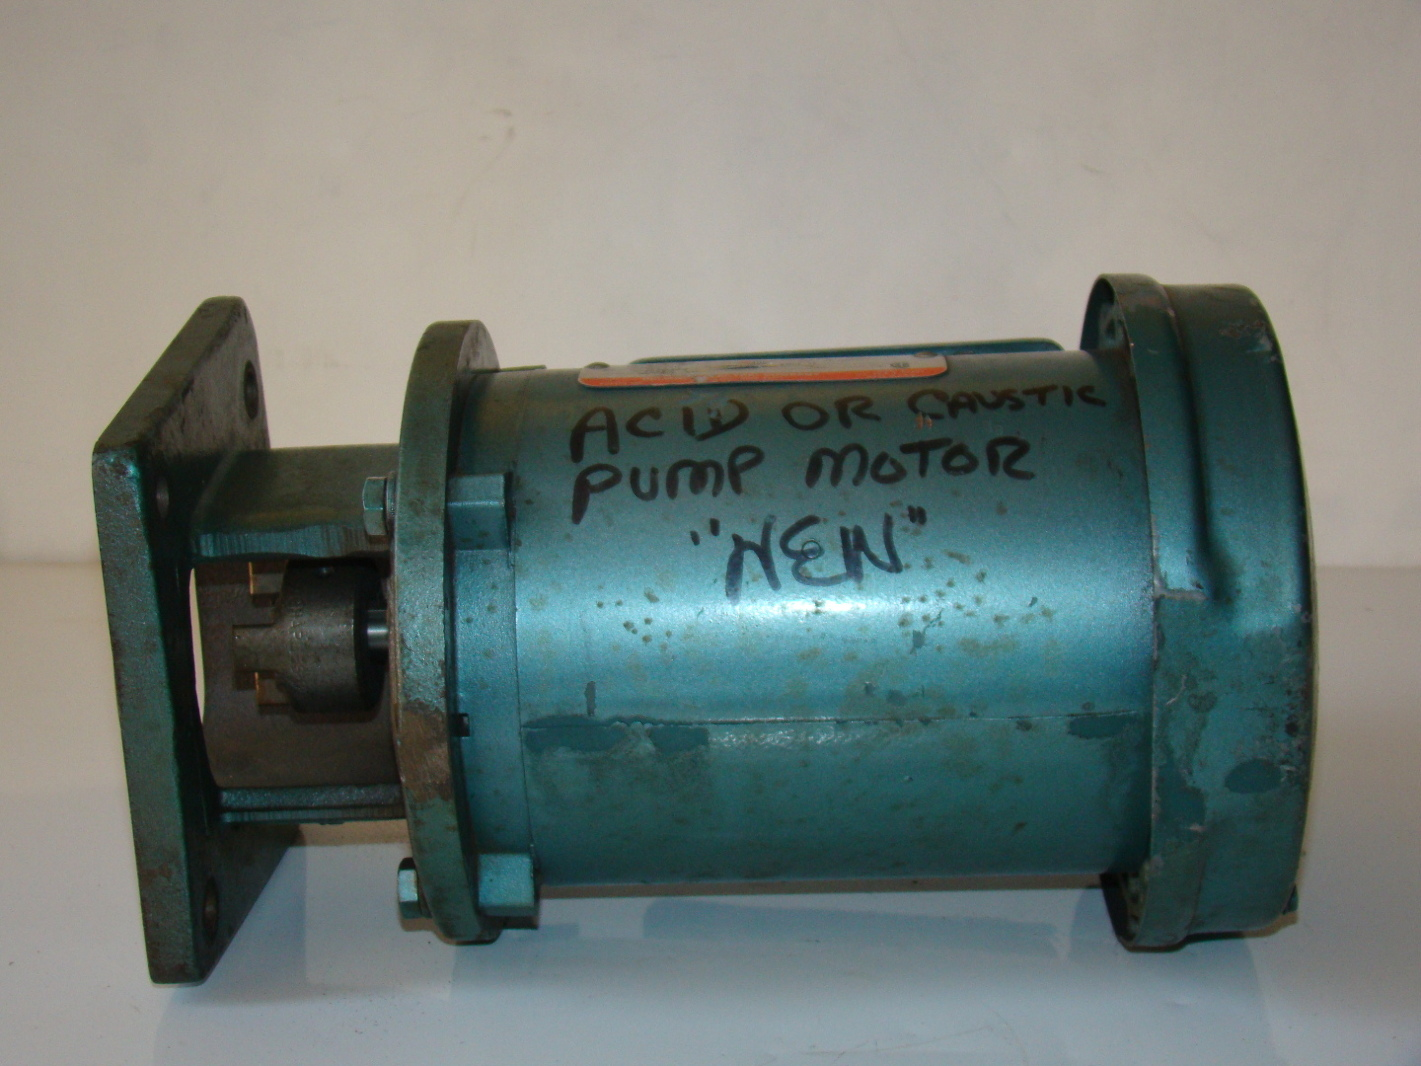 Reliance 3 4hp electric motor volts 208 230 460v p56h1337 for Reliance electric motor parts